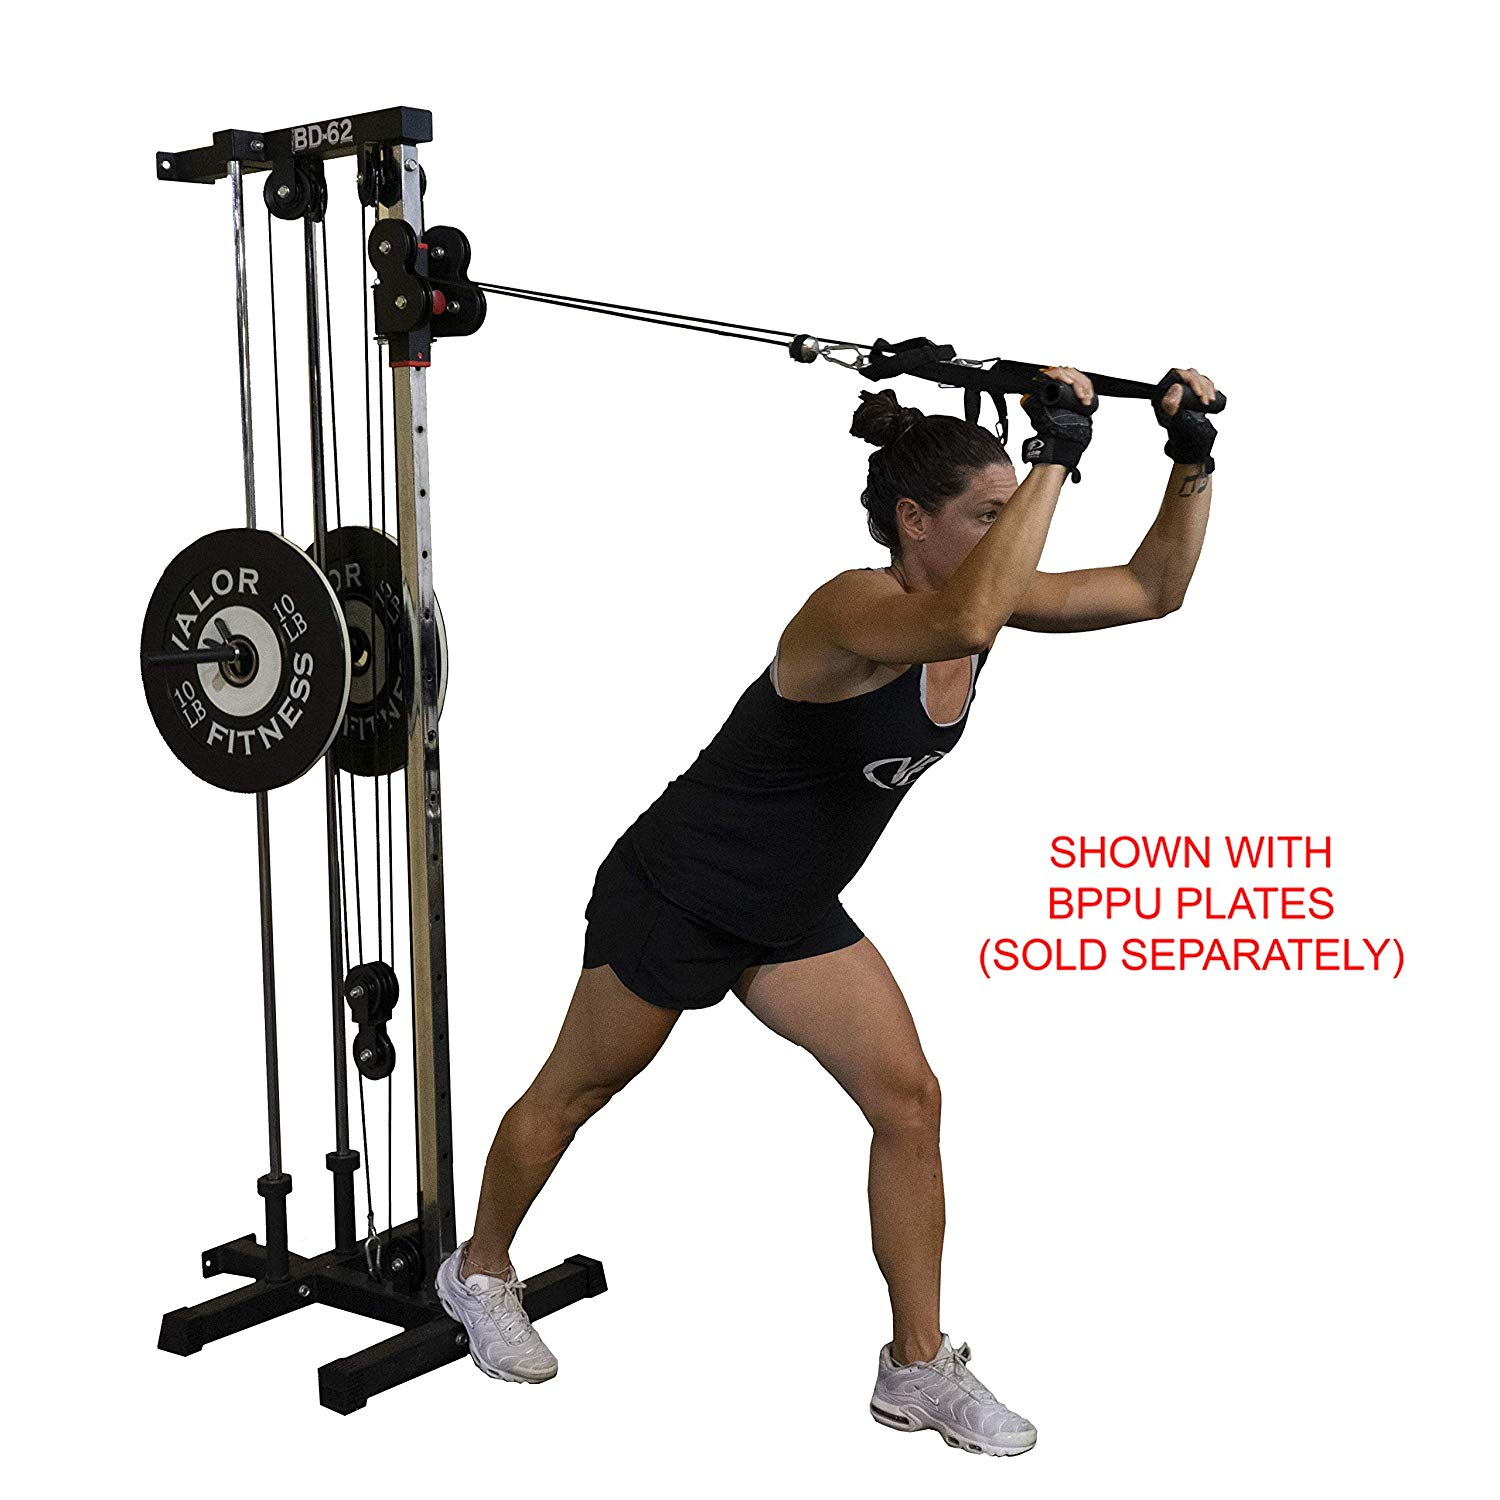 Valor Fitness BD-62 workout cable system